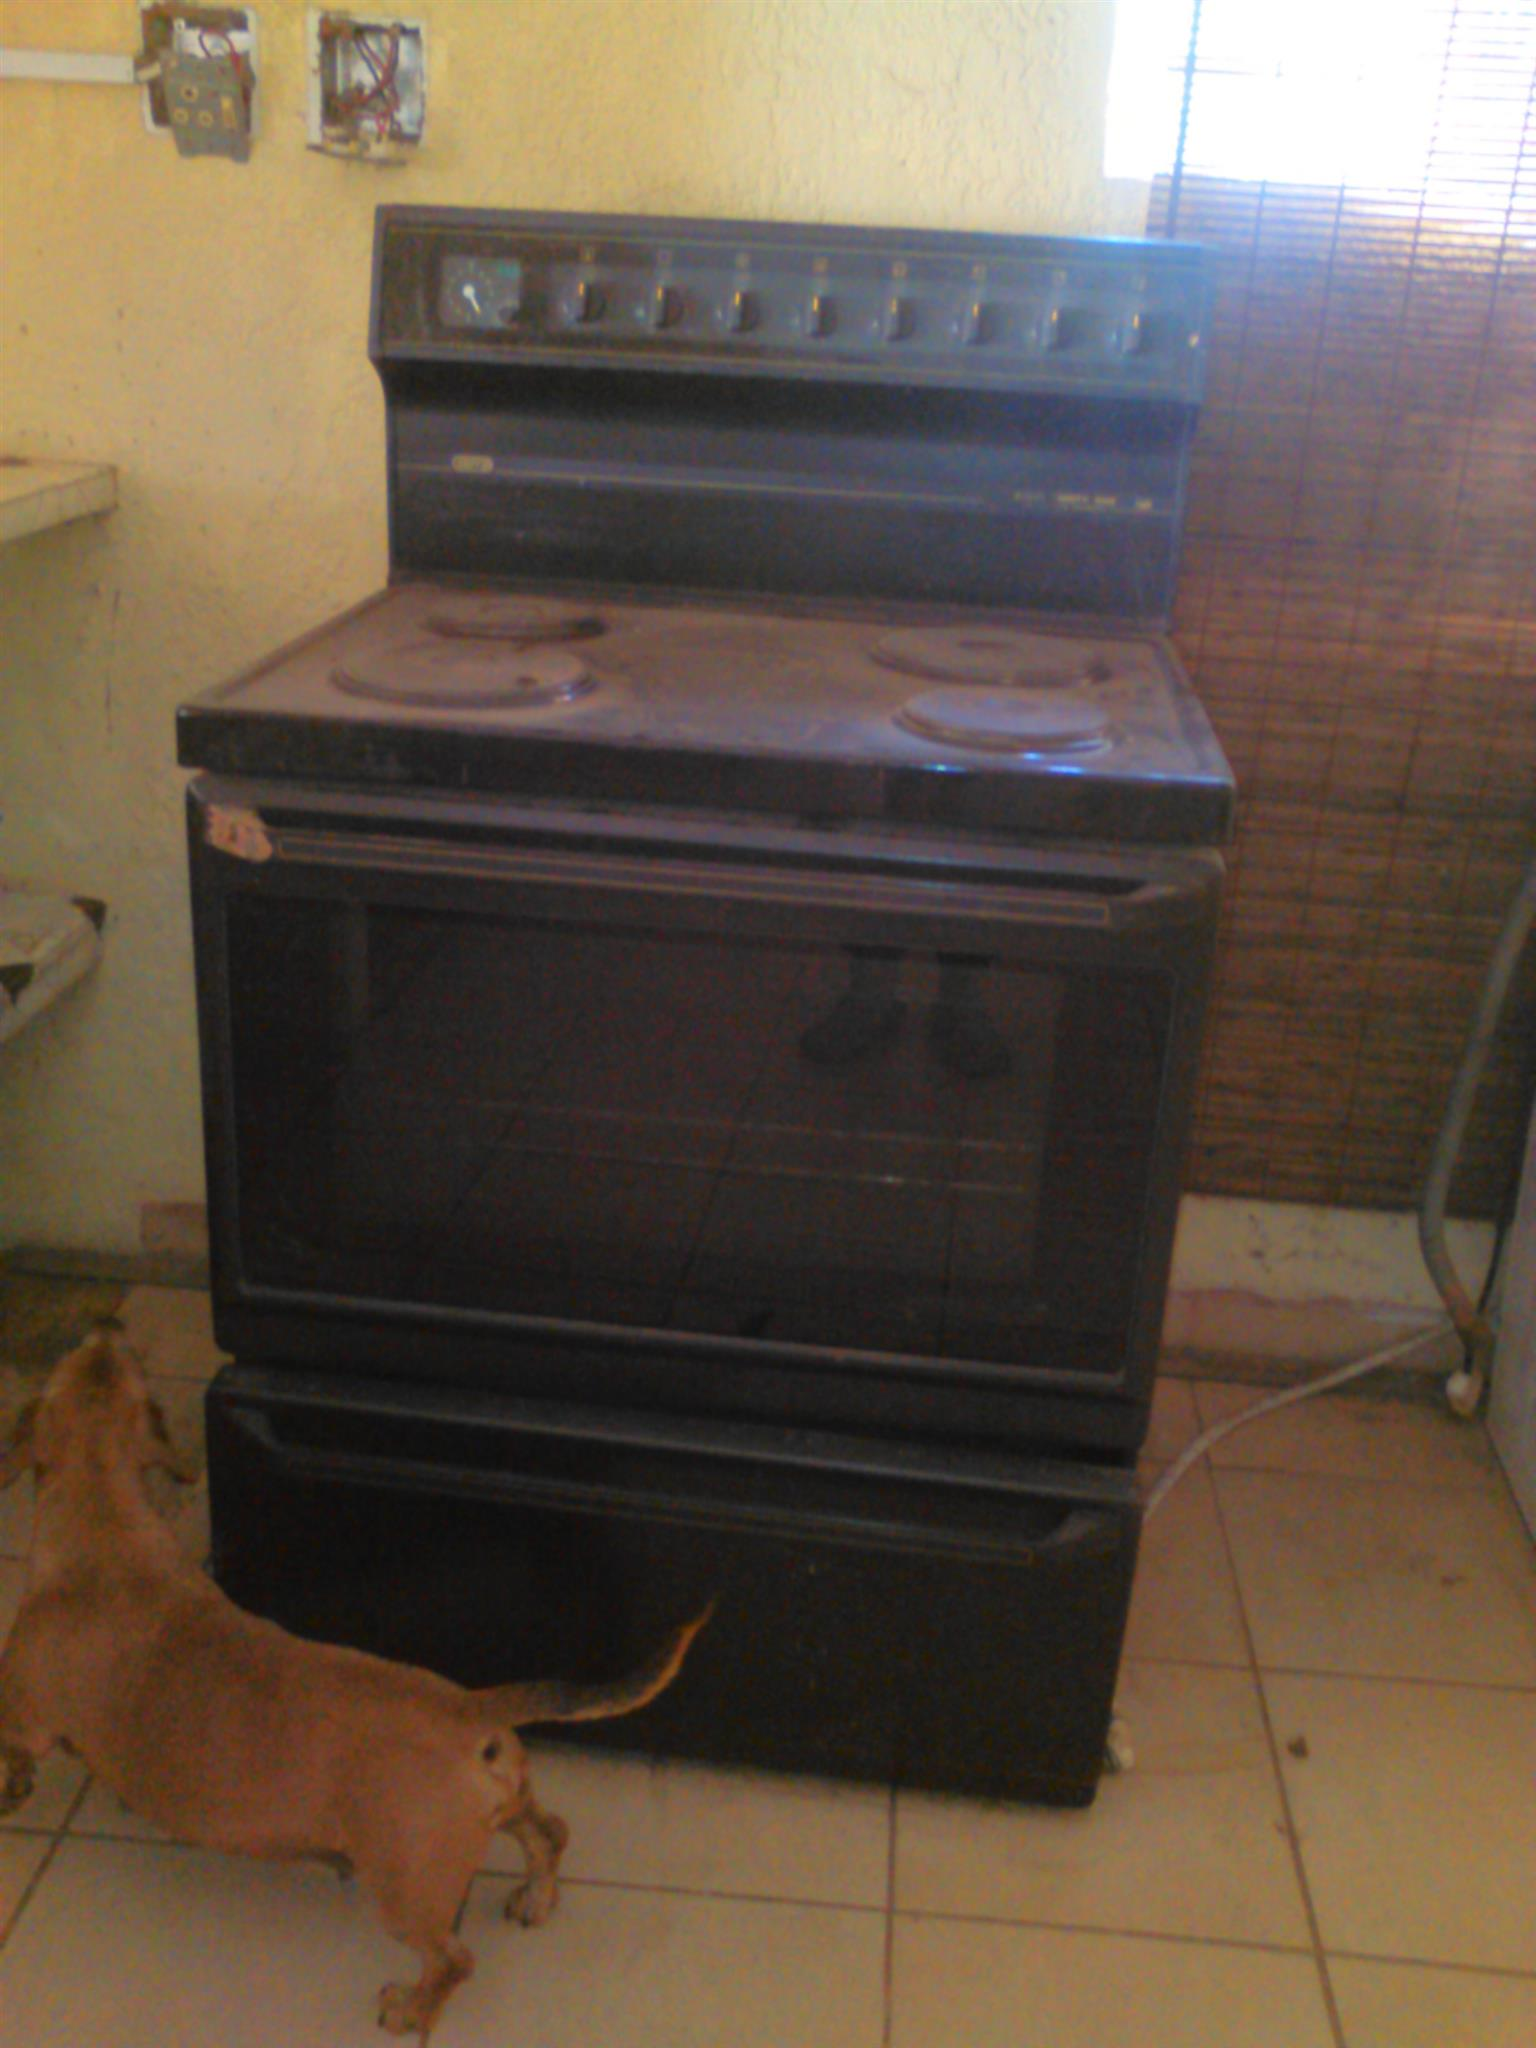 Kitchen 4 plate and Oven Stove